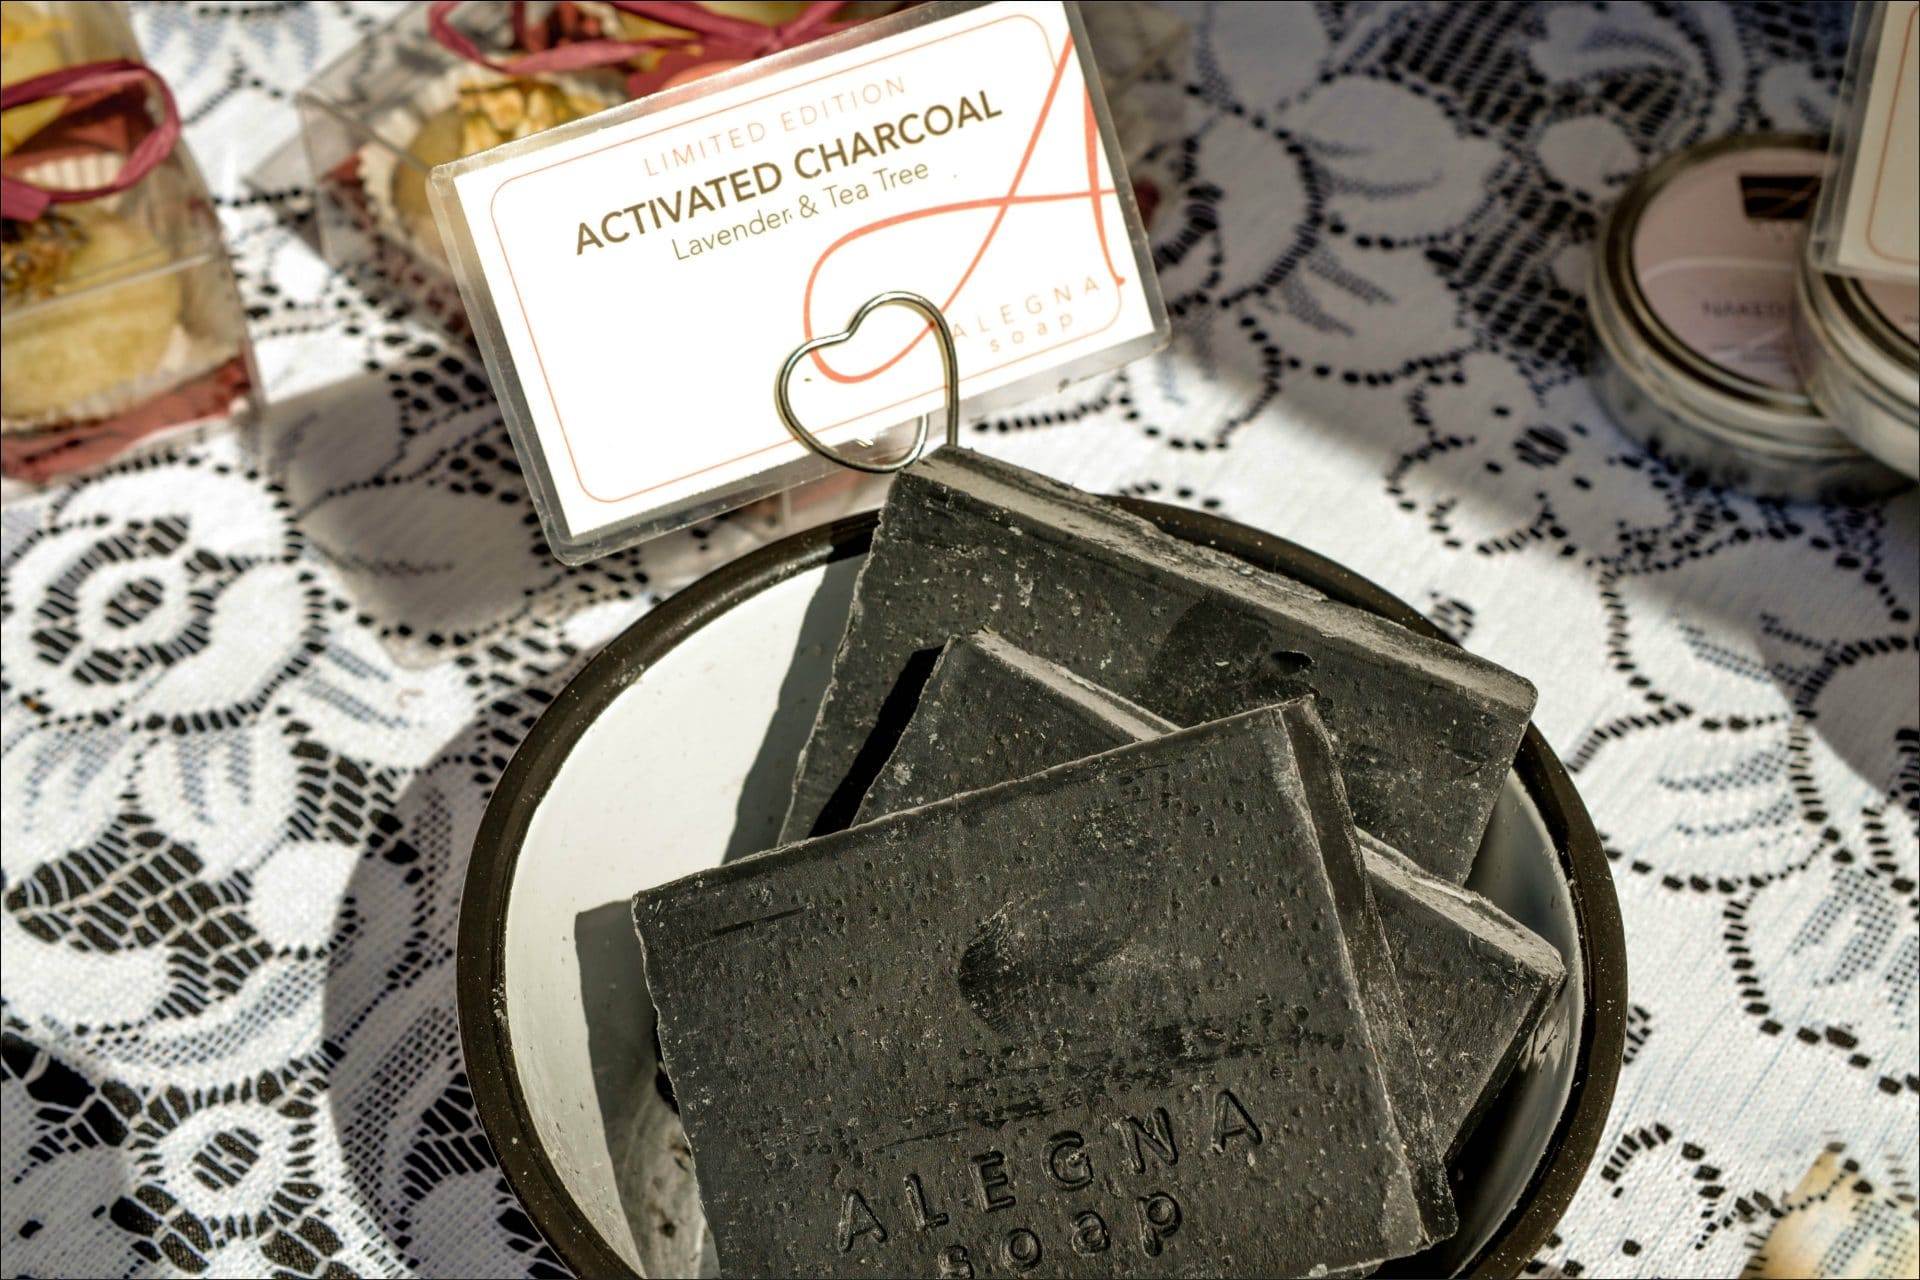 Alegna Soap® Activated Charcoal Soap